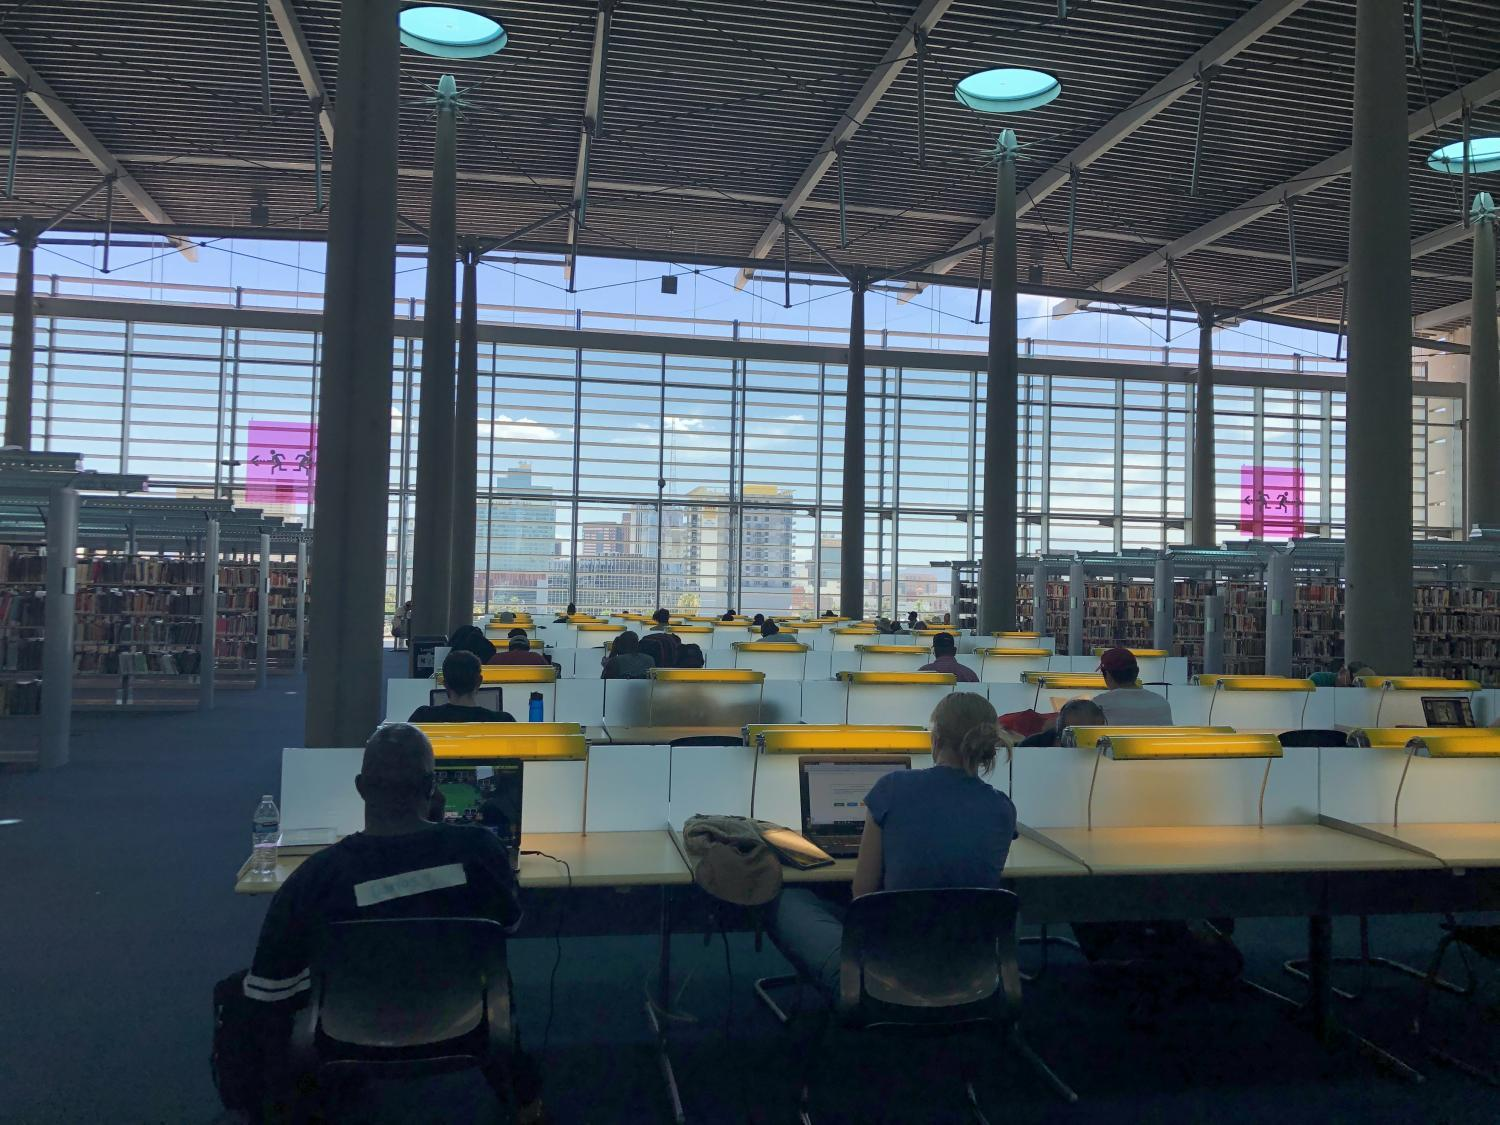 The reading room at Burton Barr Central Library